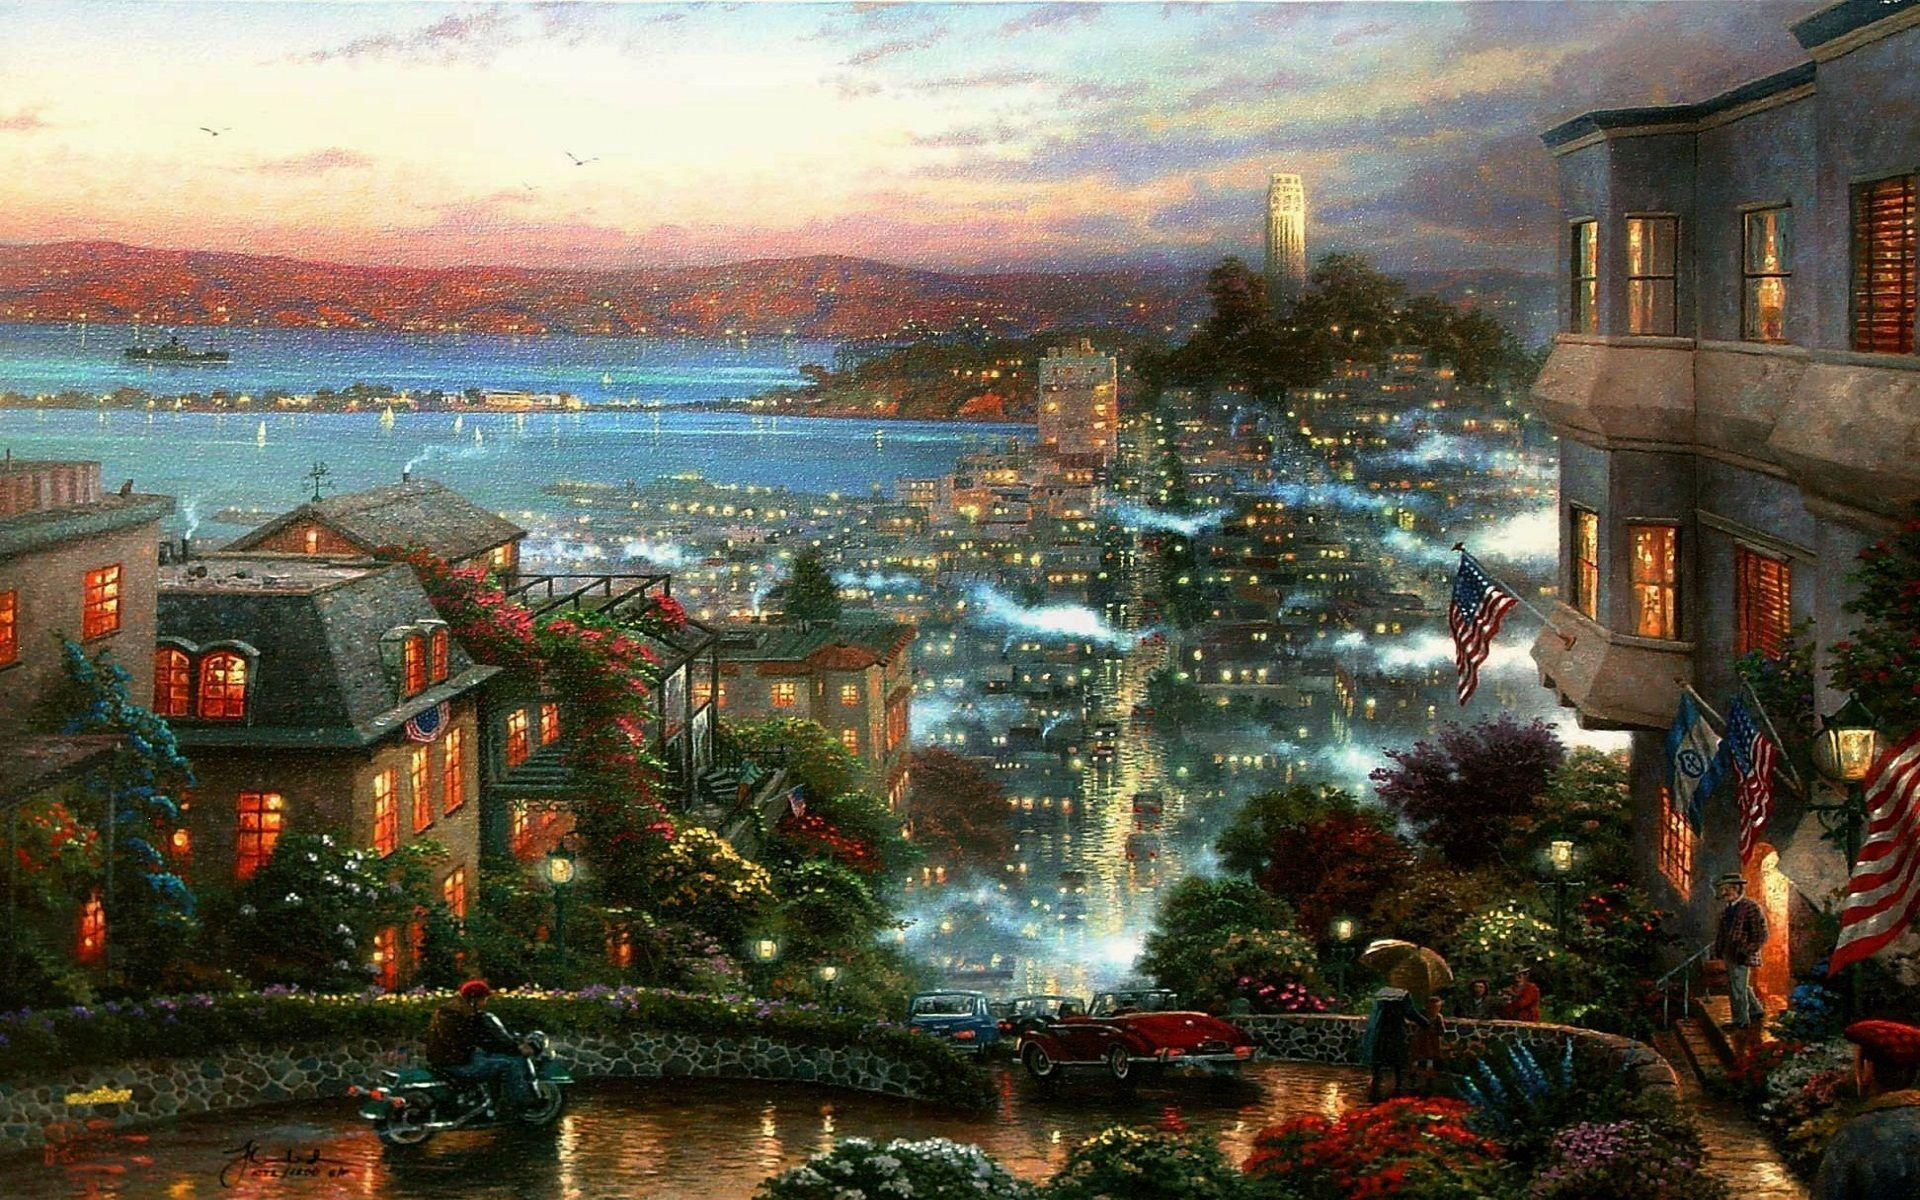 kinkade summer wallpaper drawing - photo #34